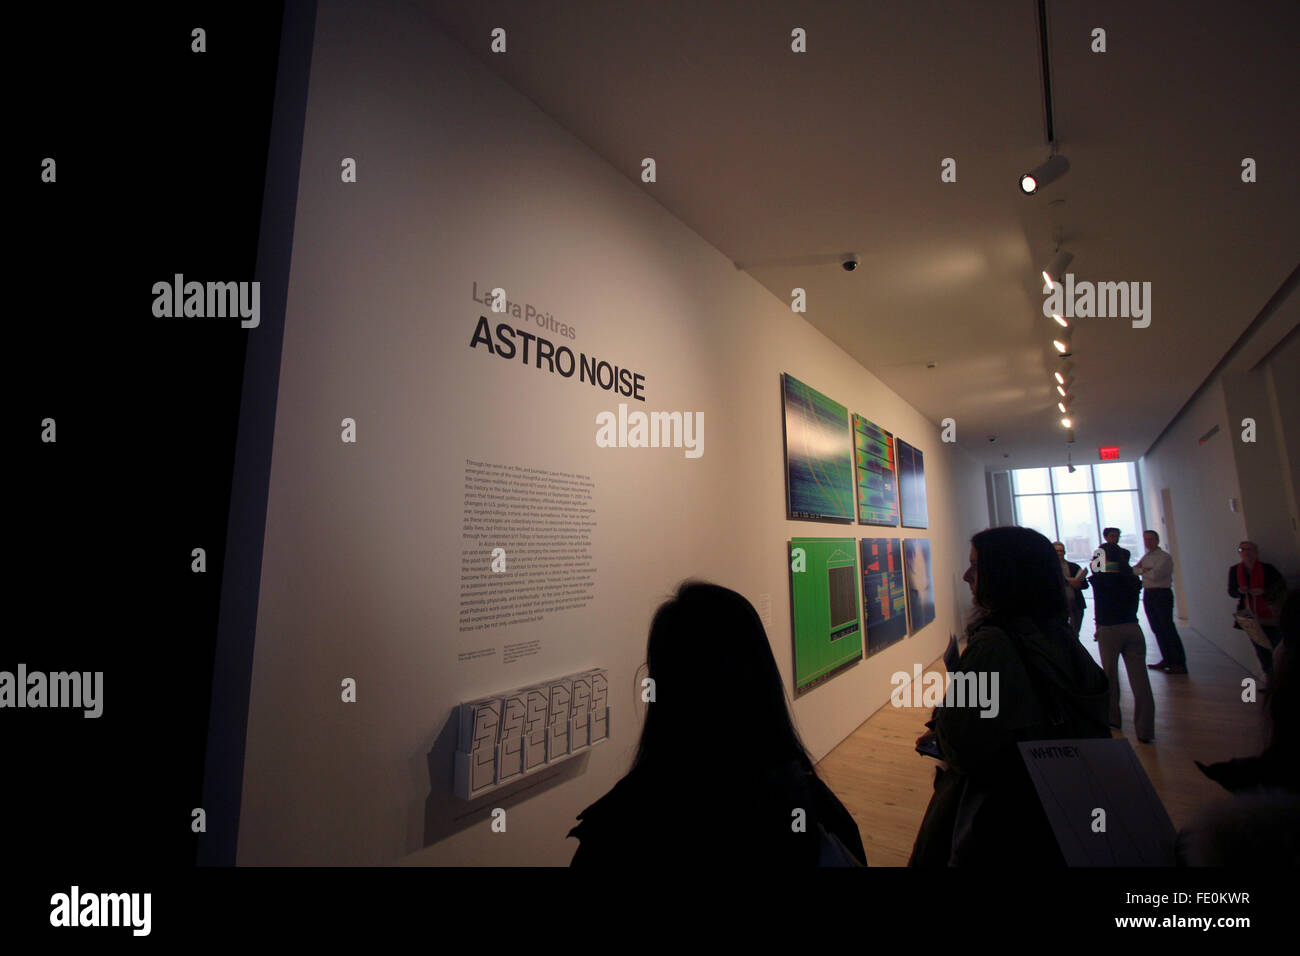 New York City, NY, USA. 3rd February, 2016. The entrance to Astro Noise, Laura Poitras'  first solo exhibition - Stock Image